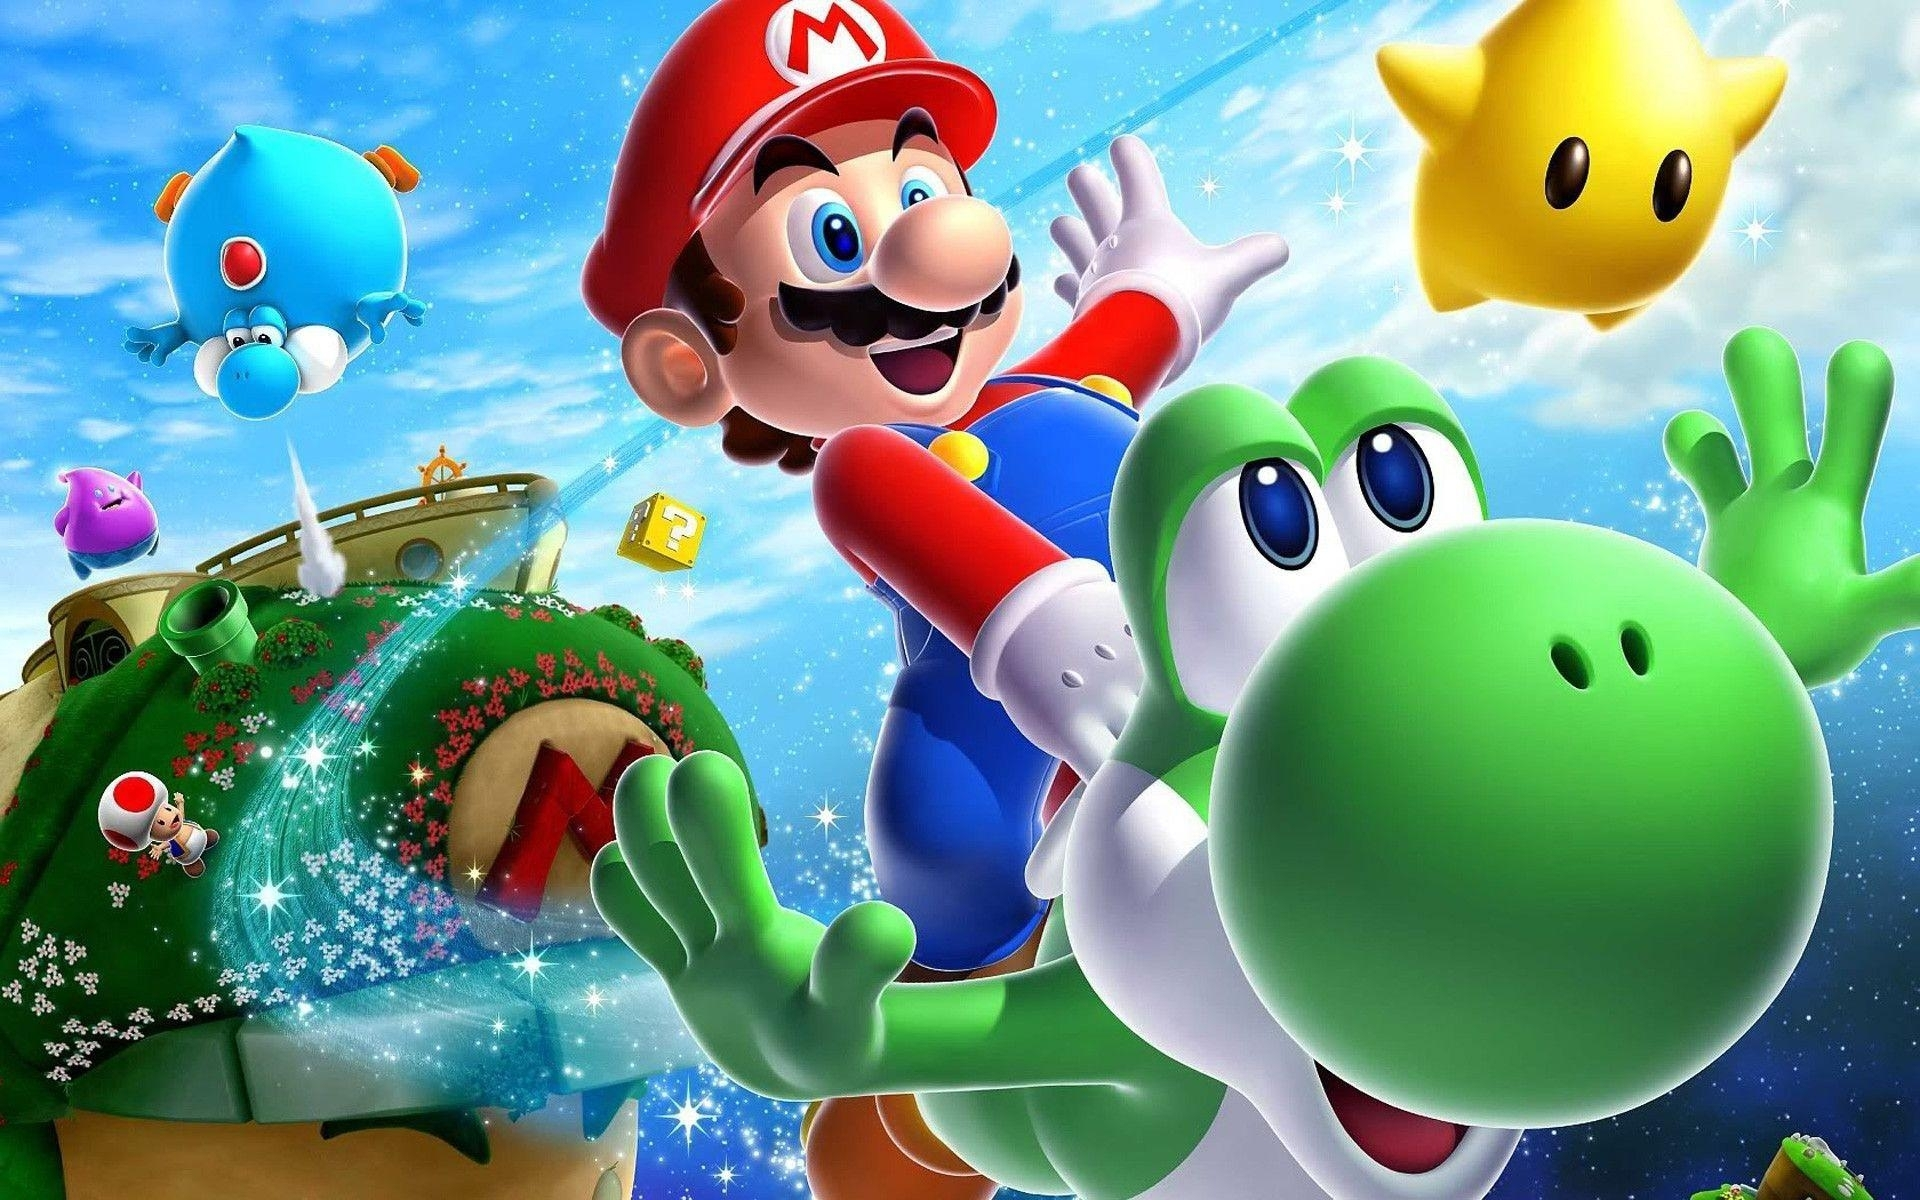 mario hd wallpapers - wallpaper cave